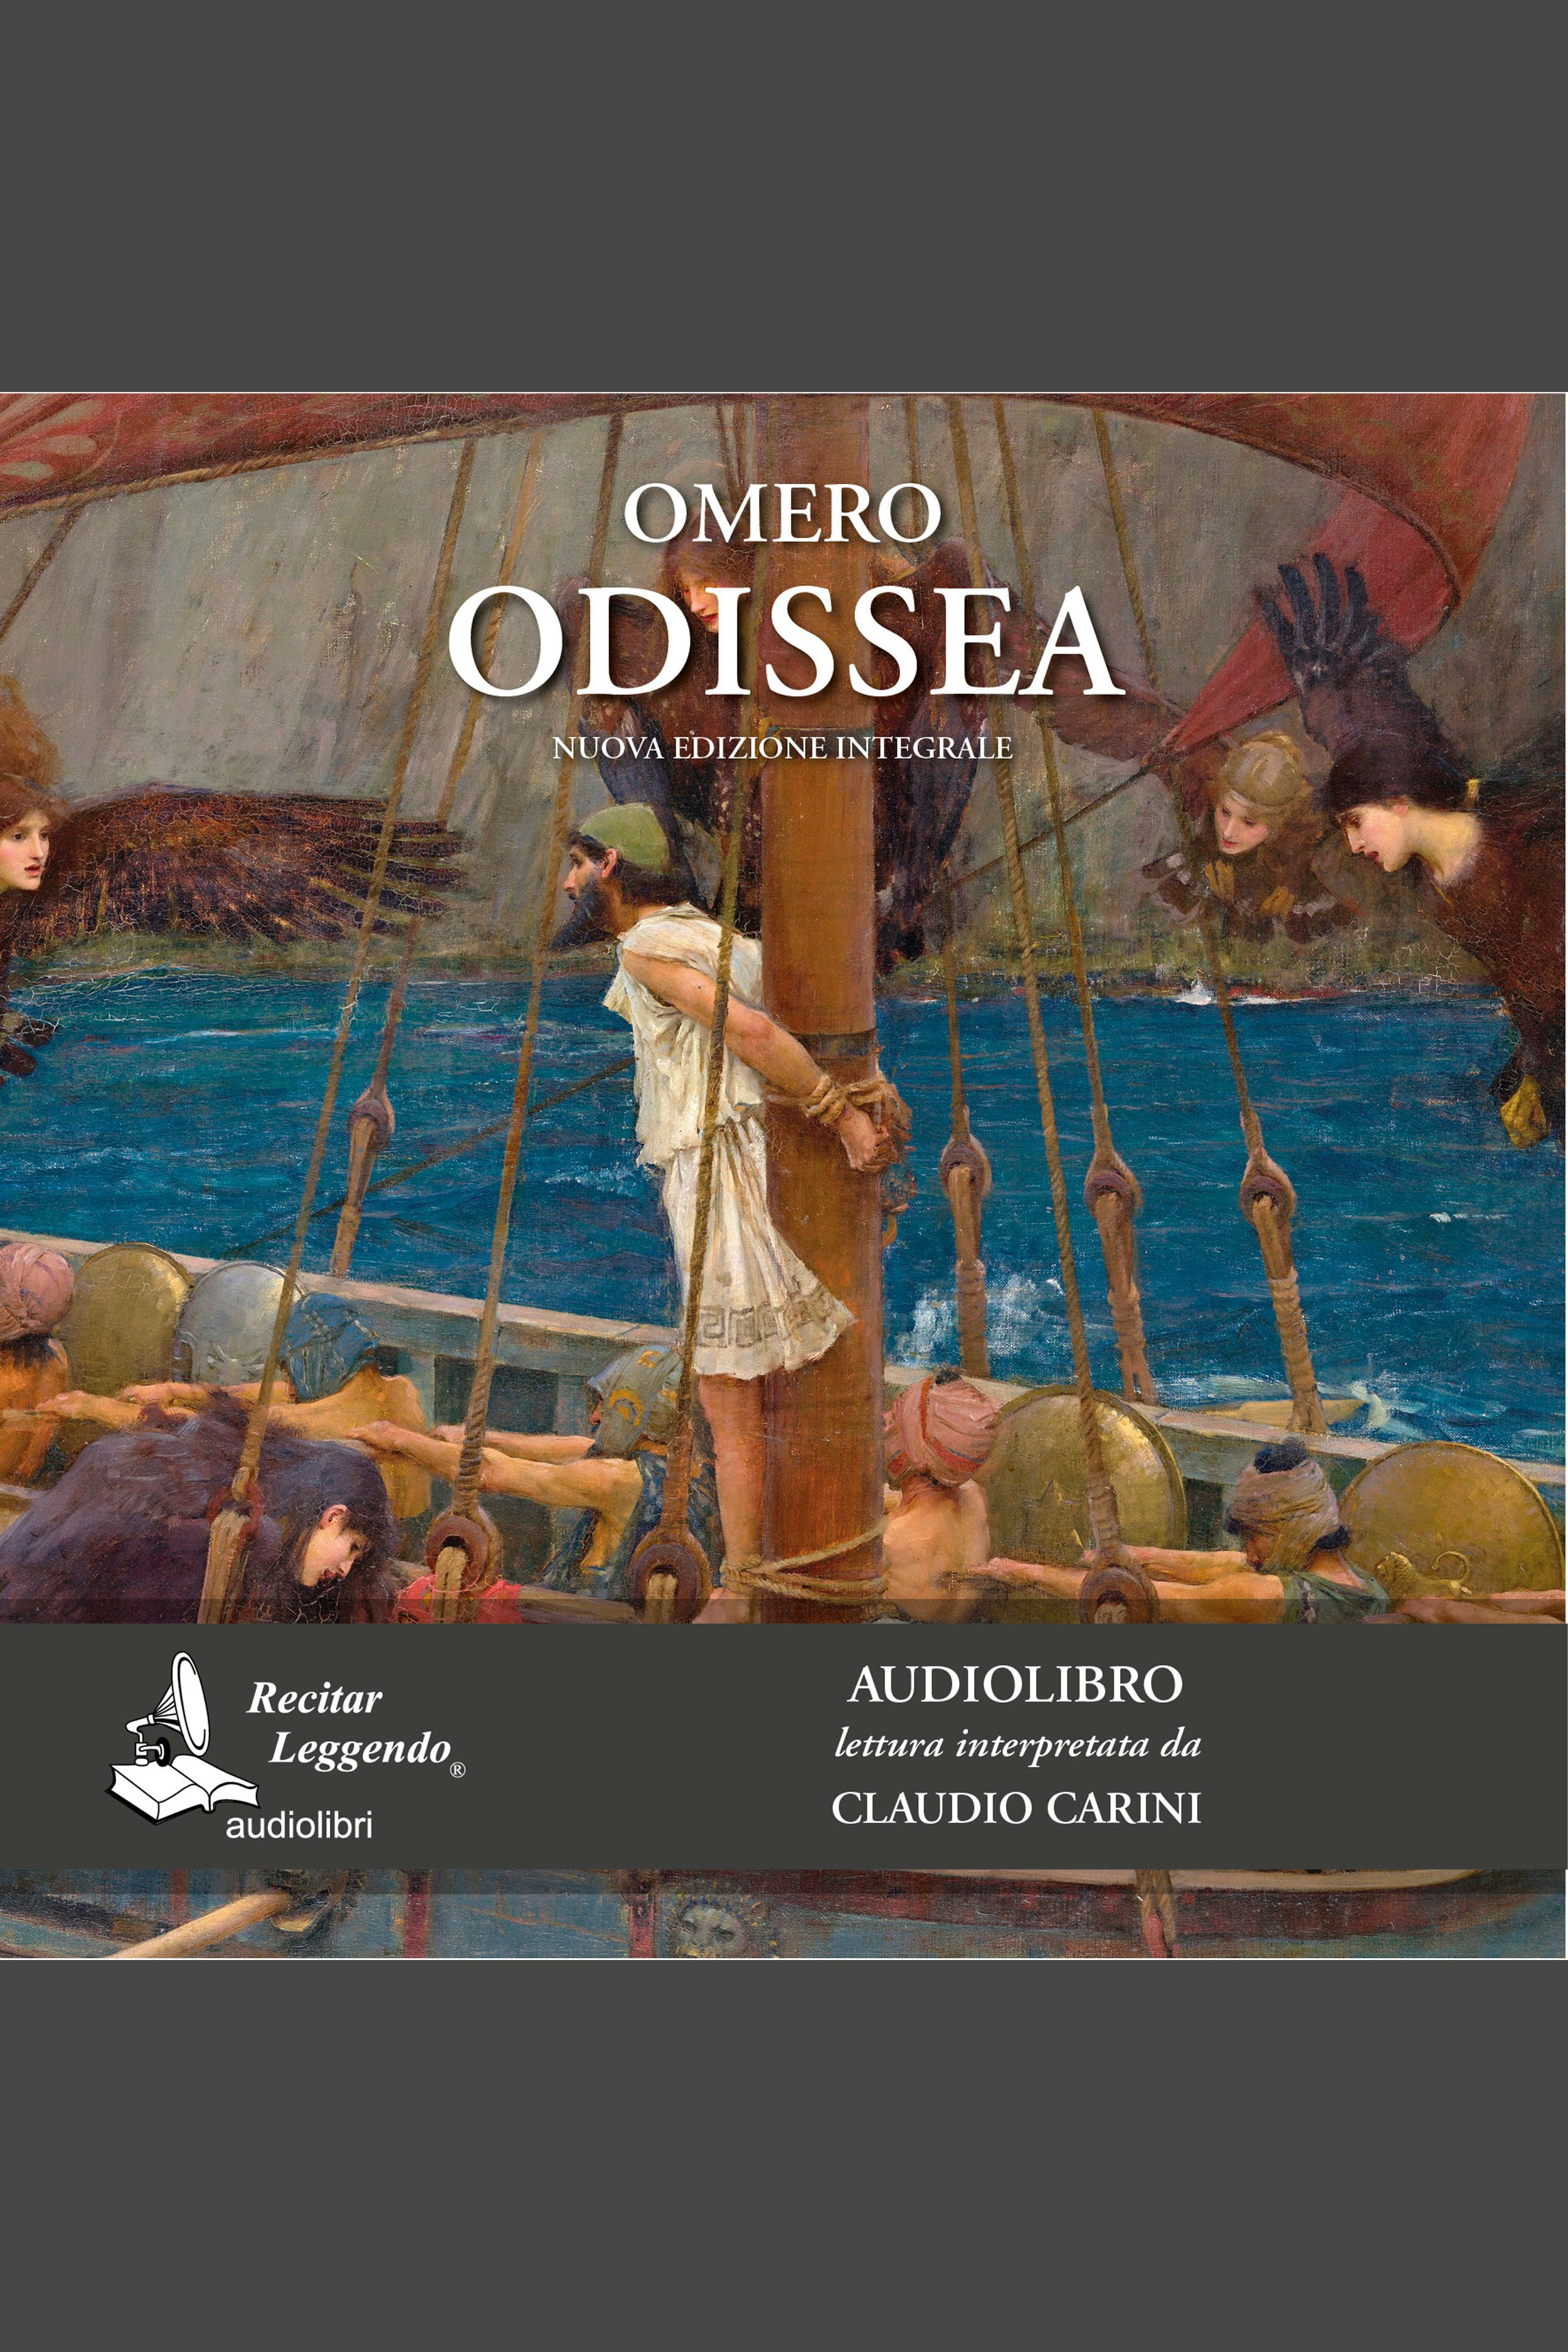 Odissea cover image